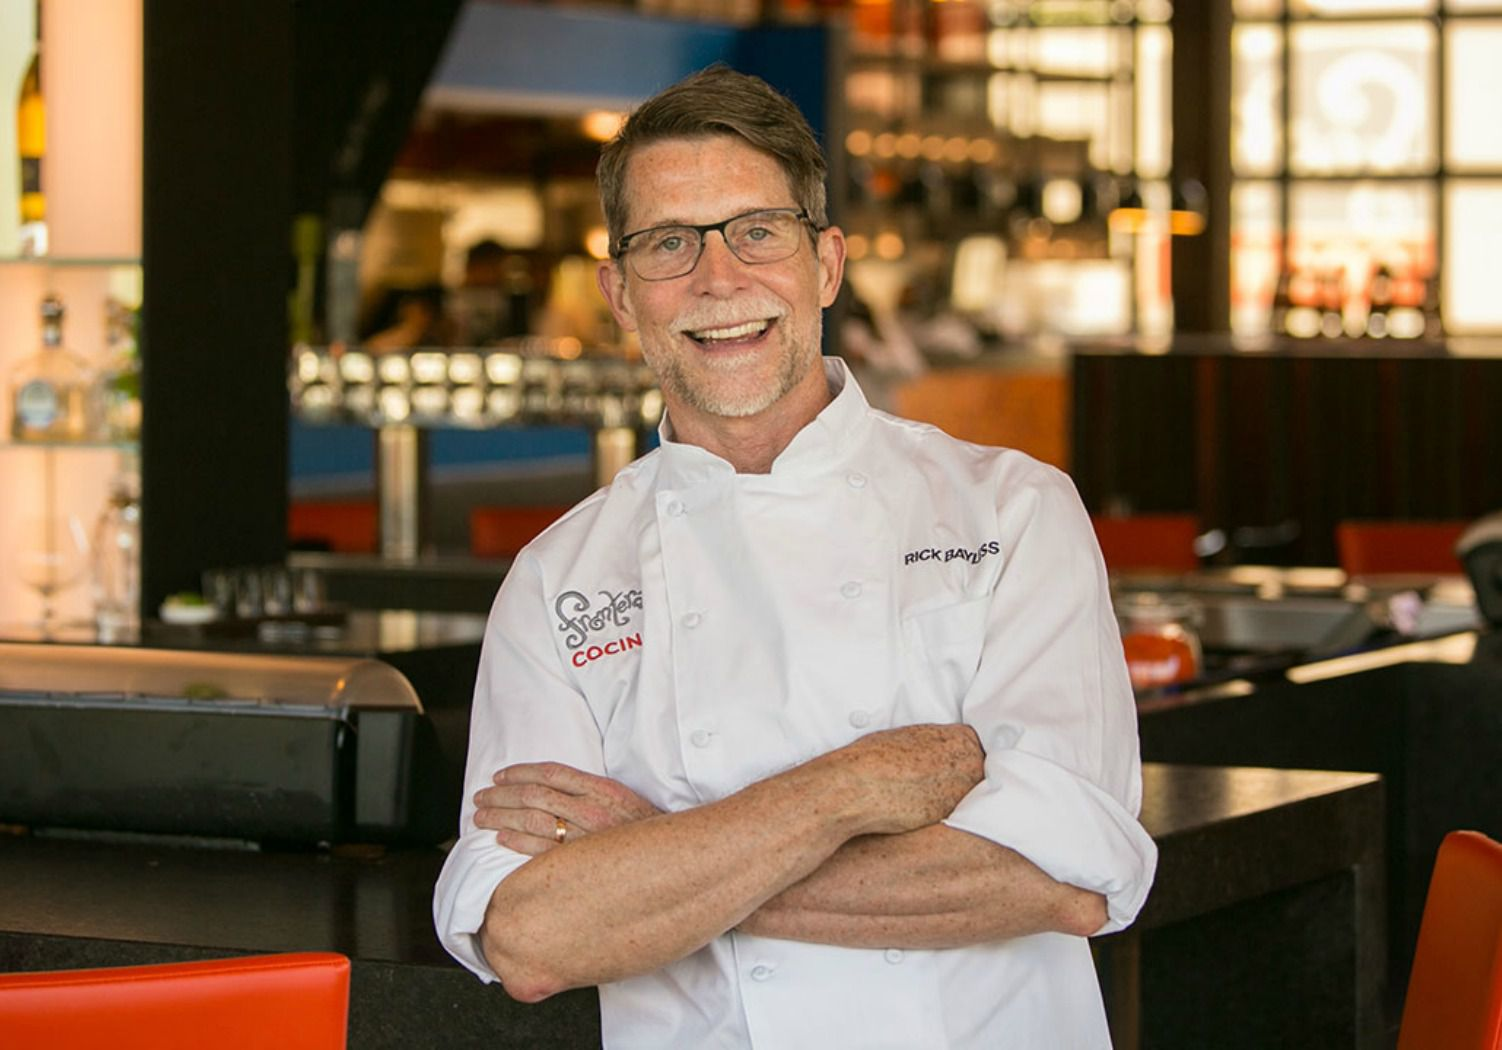 Rick Bayless, Chef famoso en Disney World